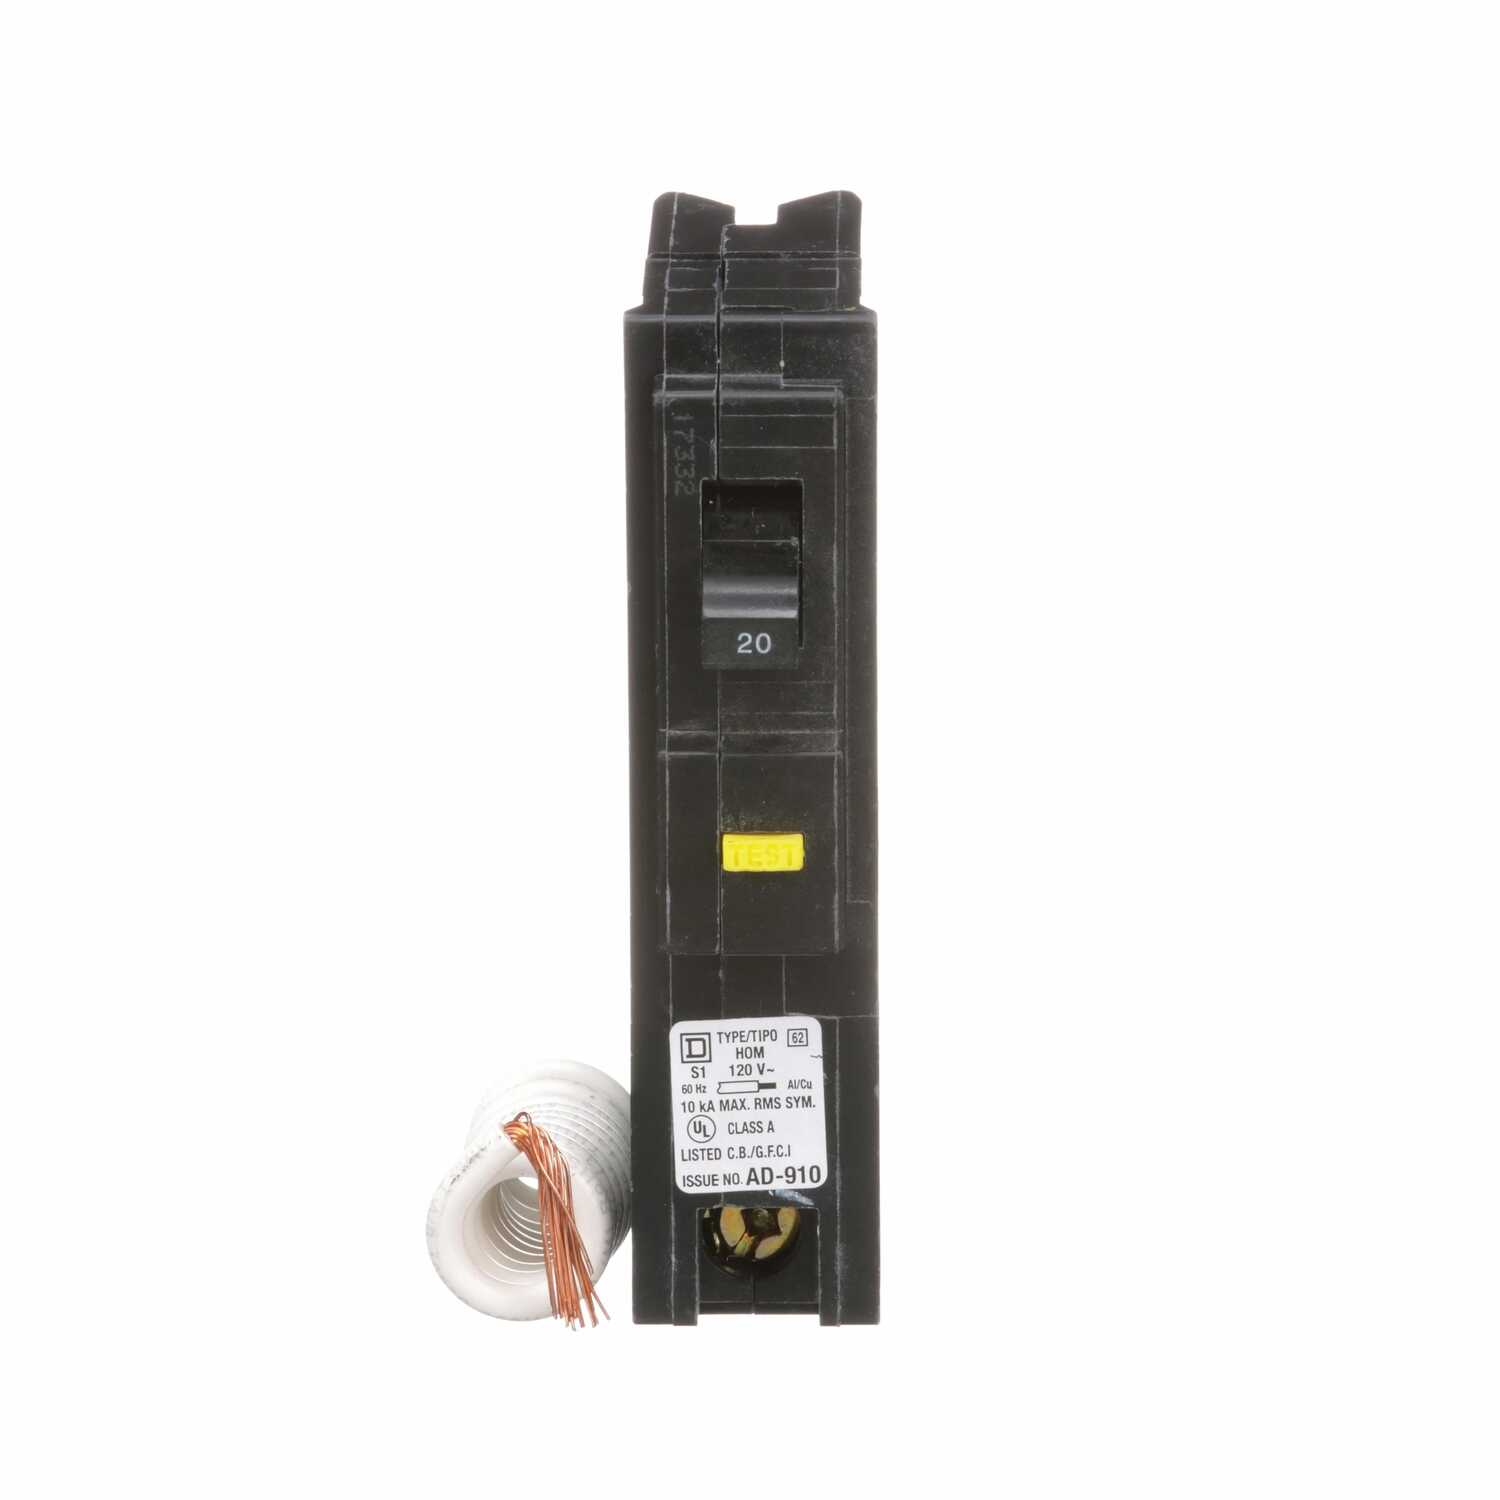 Square D  HomeLine  20 amps Surge  Single Pole  Circuit Breaker